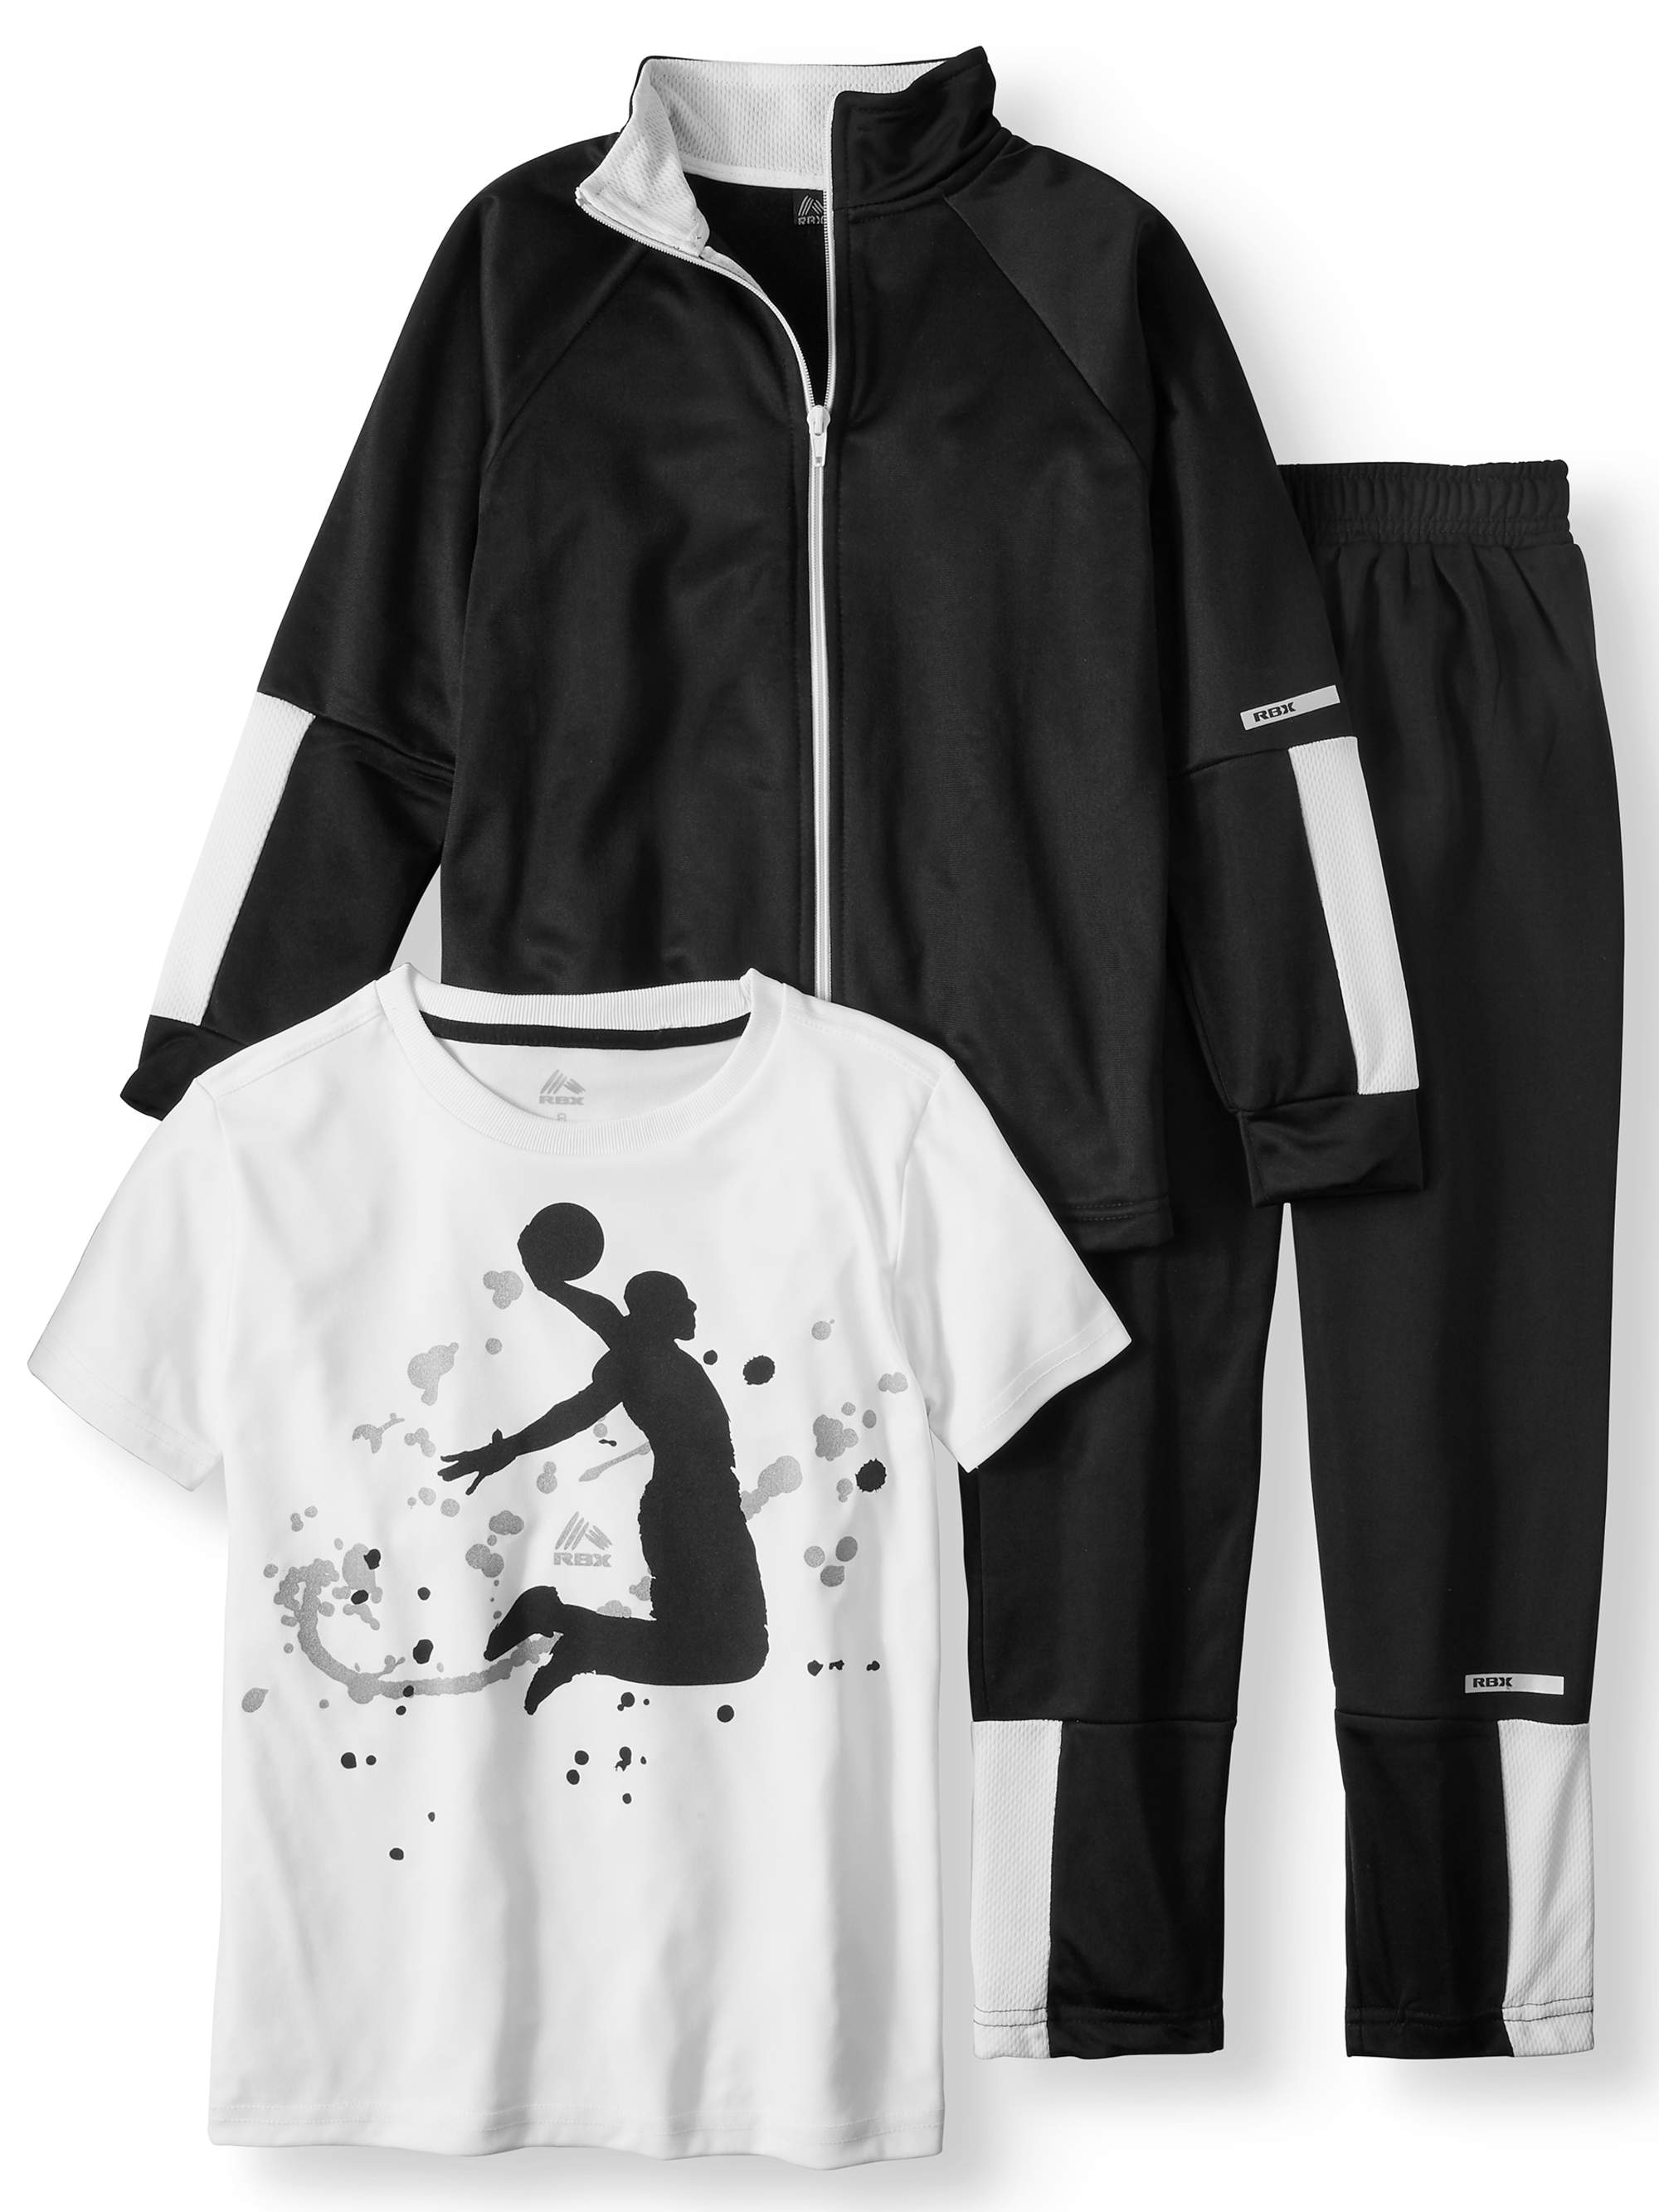 RBX Boy's 3-Piece Tricot Jacket, Graphic Tee and Pants Set